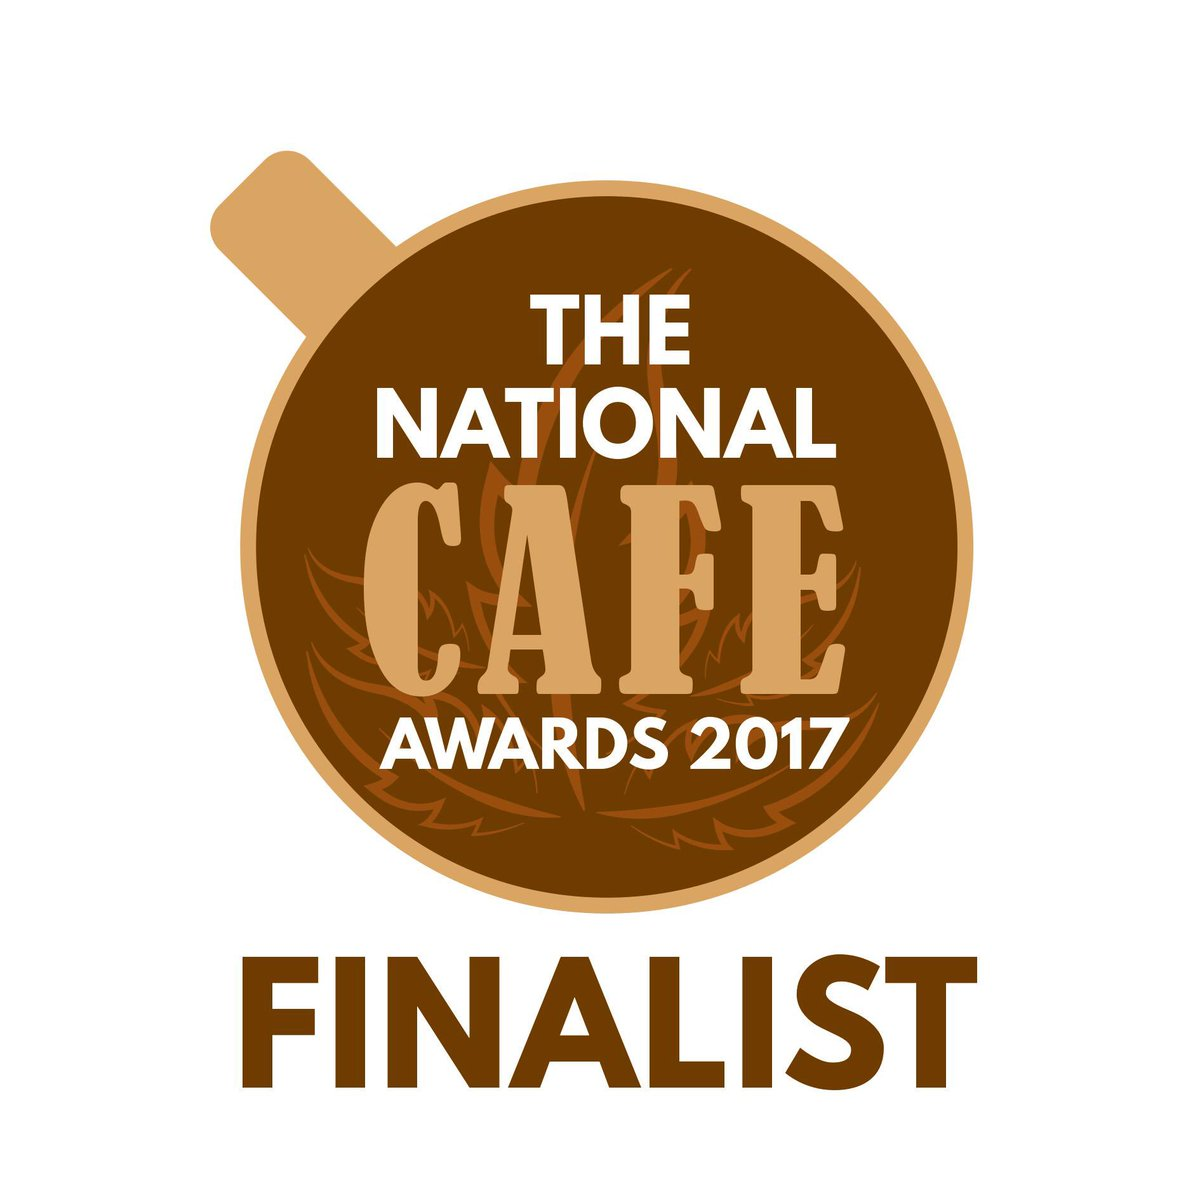 Very proud to be listed as finalist for the Cafe of the year category #NationalCafeAwards #rdg #rdguk #supportlocal #coffeeshop<br>http://pic.twitter.com/TvTNZM9h6o